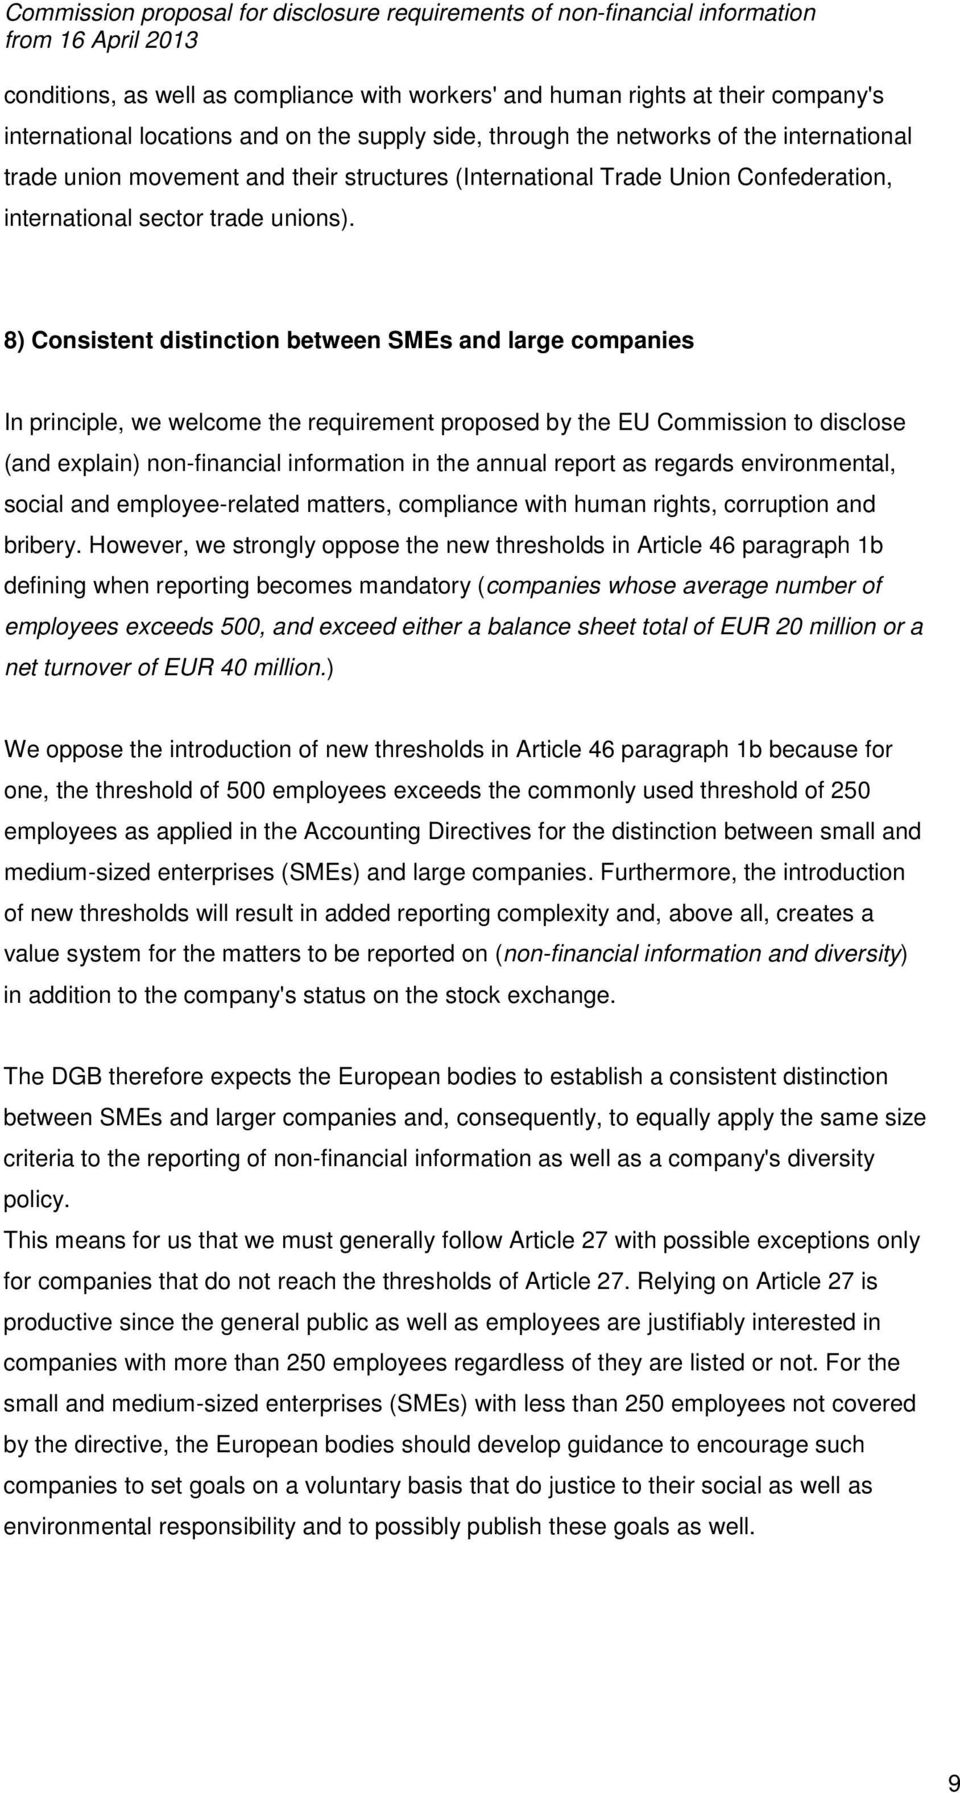 8) Consistent distinction between SMEs and large companies In principle, we welcome the requirement proposed by the EU Commission to disclose (and explain) non-financial information in the annual